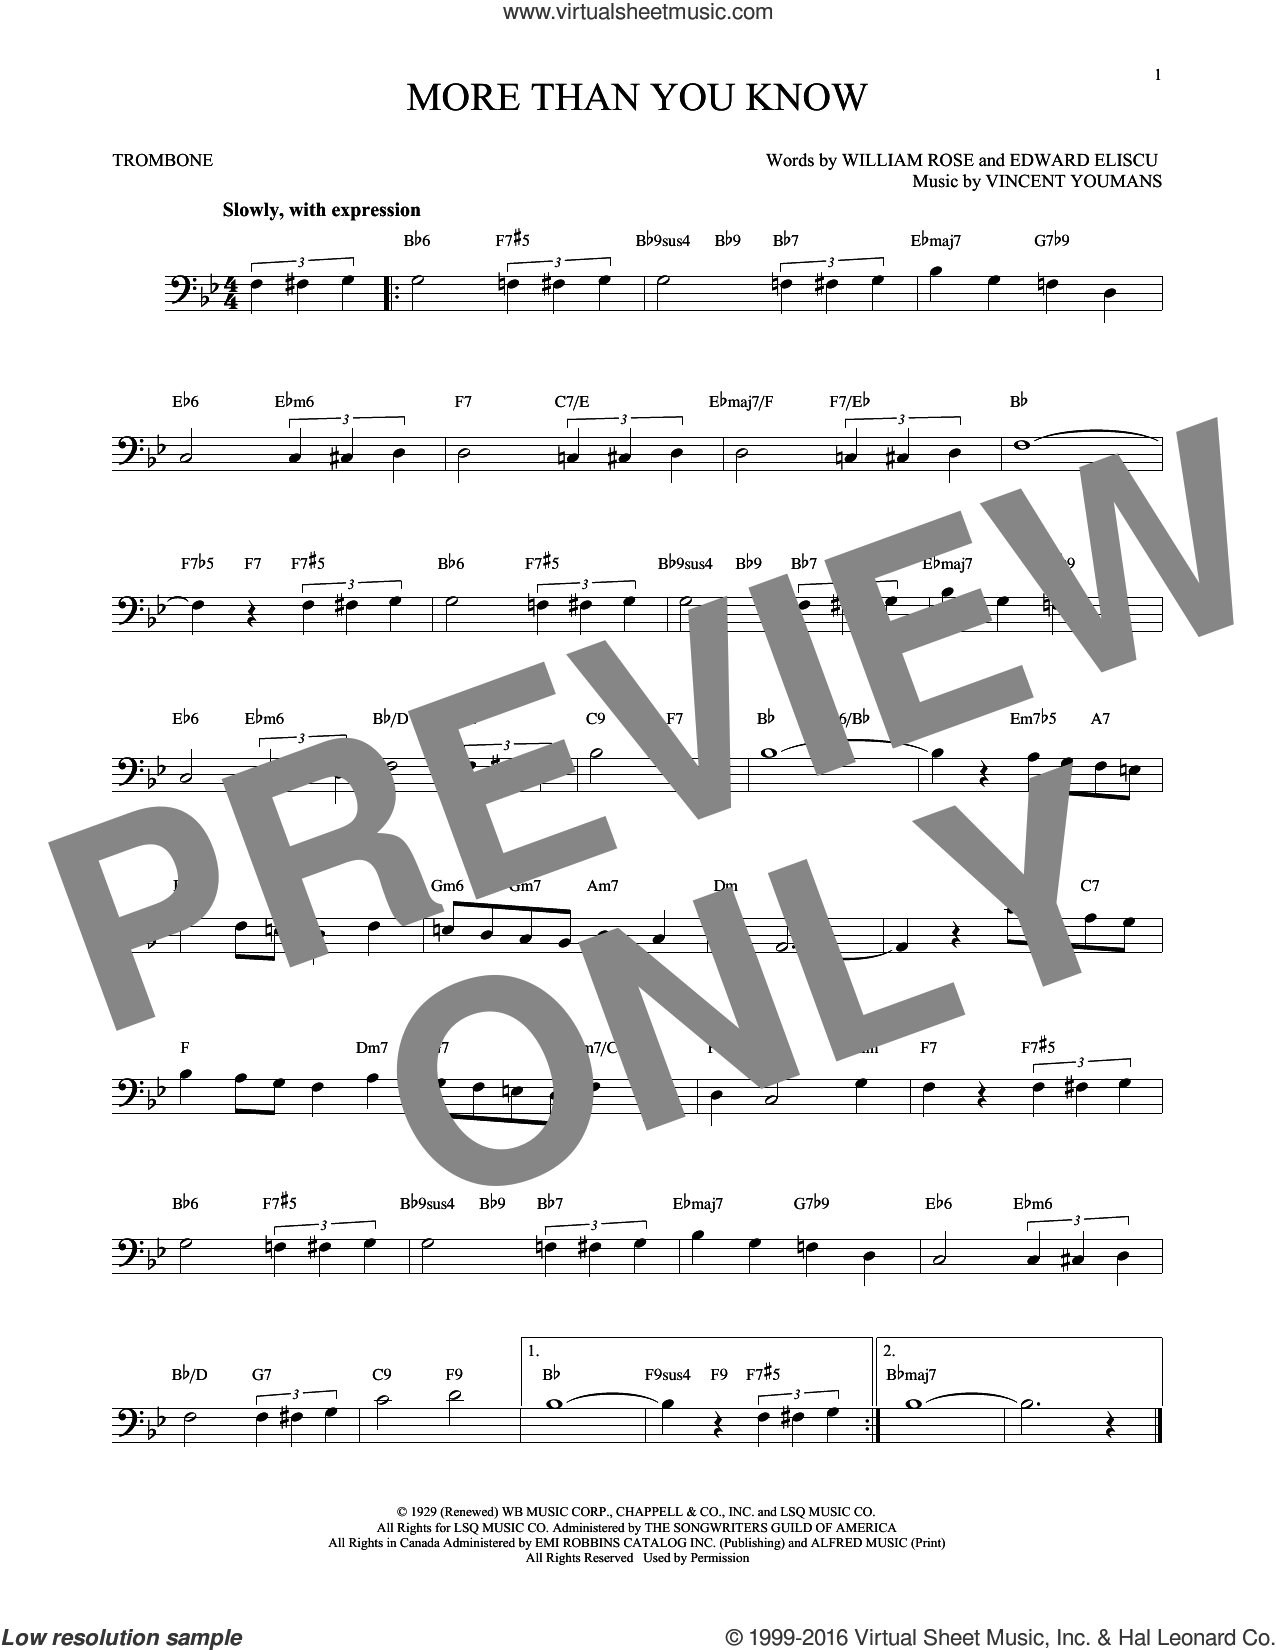 More Than You Know sheet music for trombone solo by Vincent Youmans, Edward Eliscu and William Rose, intermediate trombone. Score Image Preview.